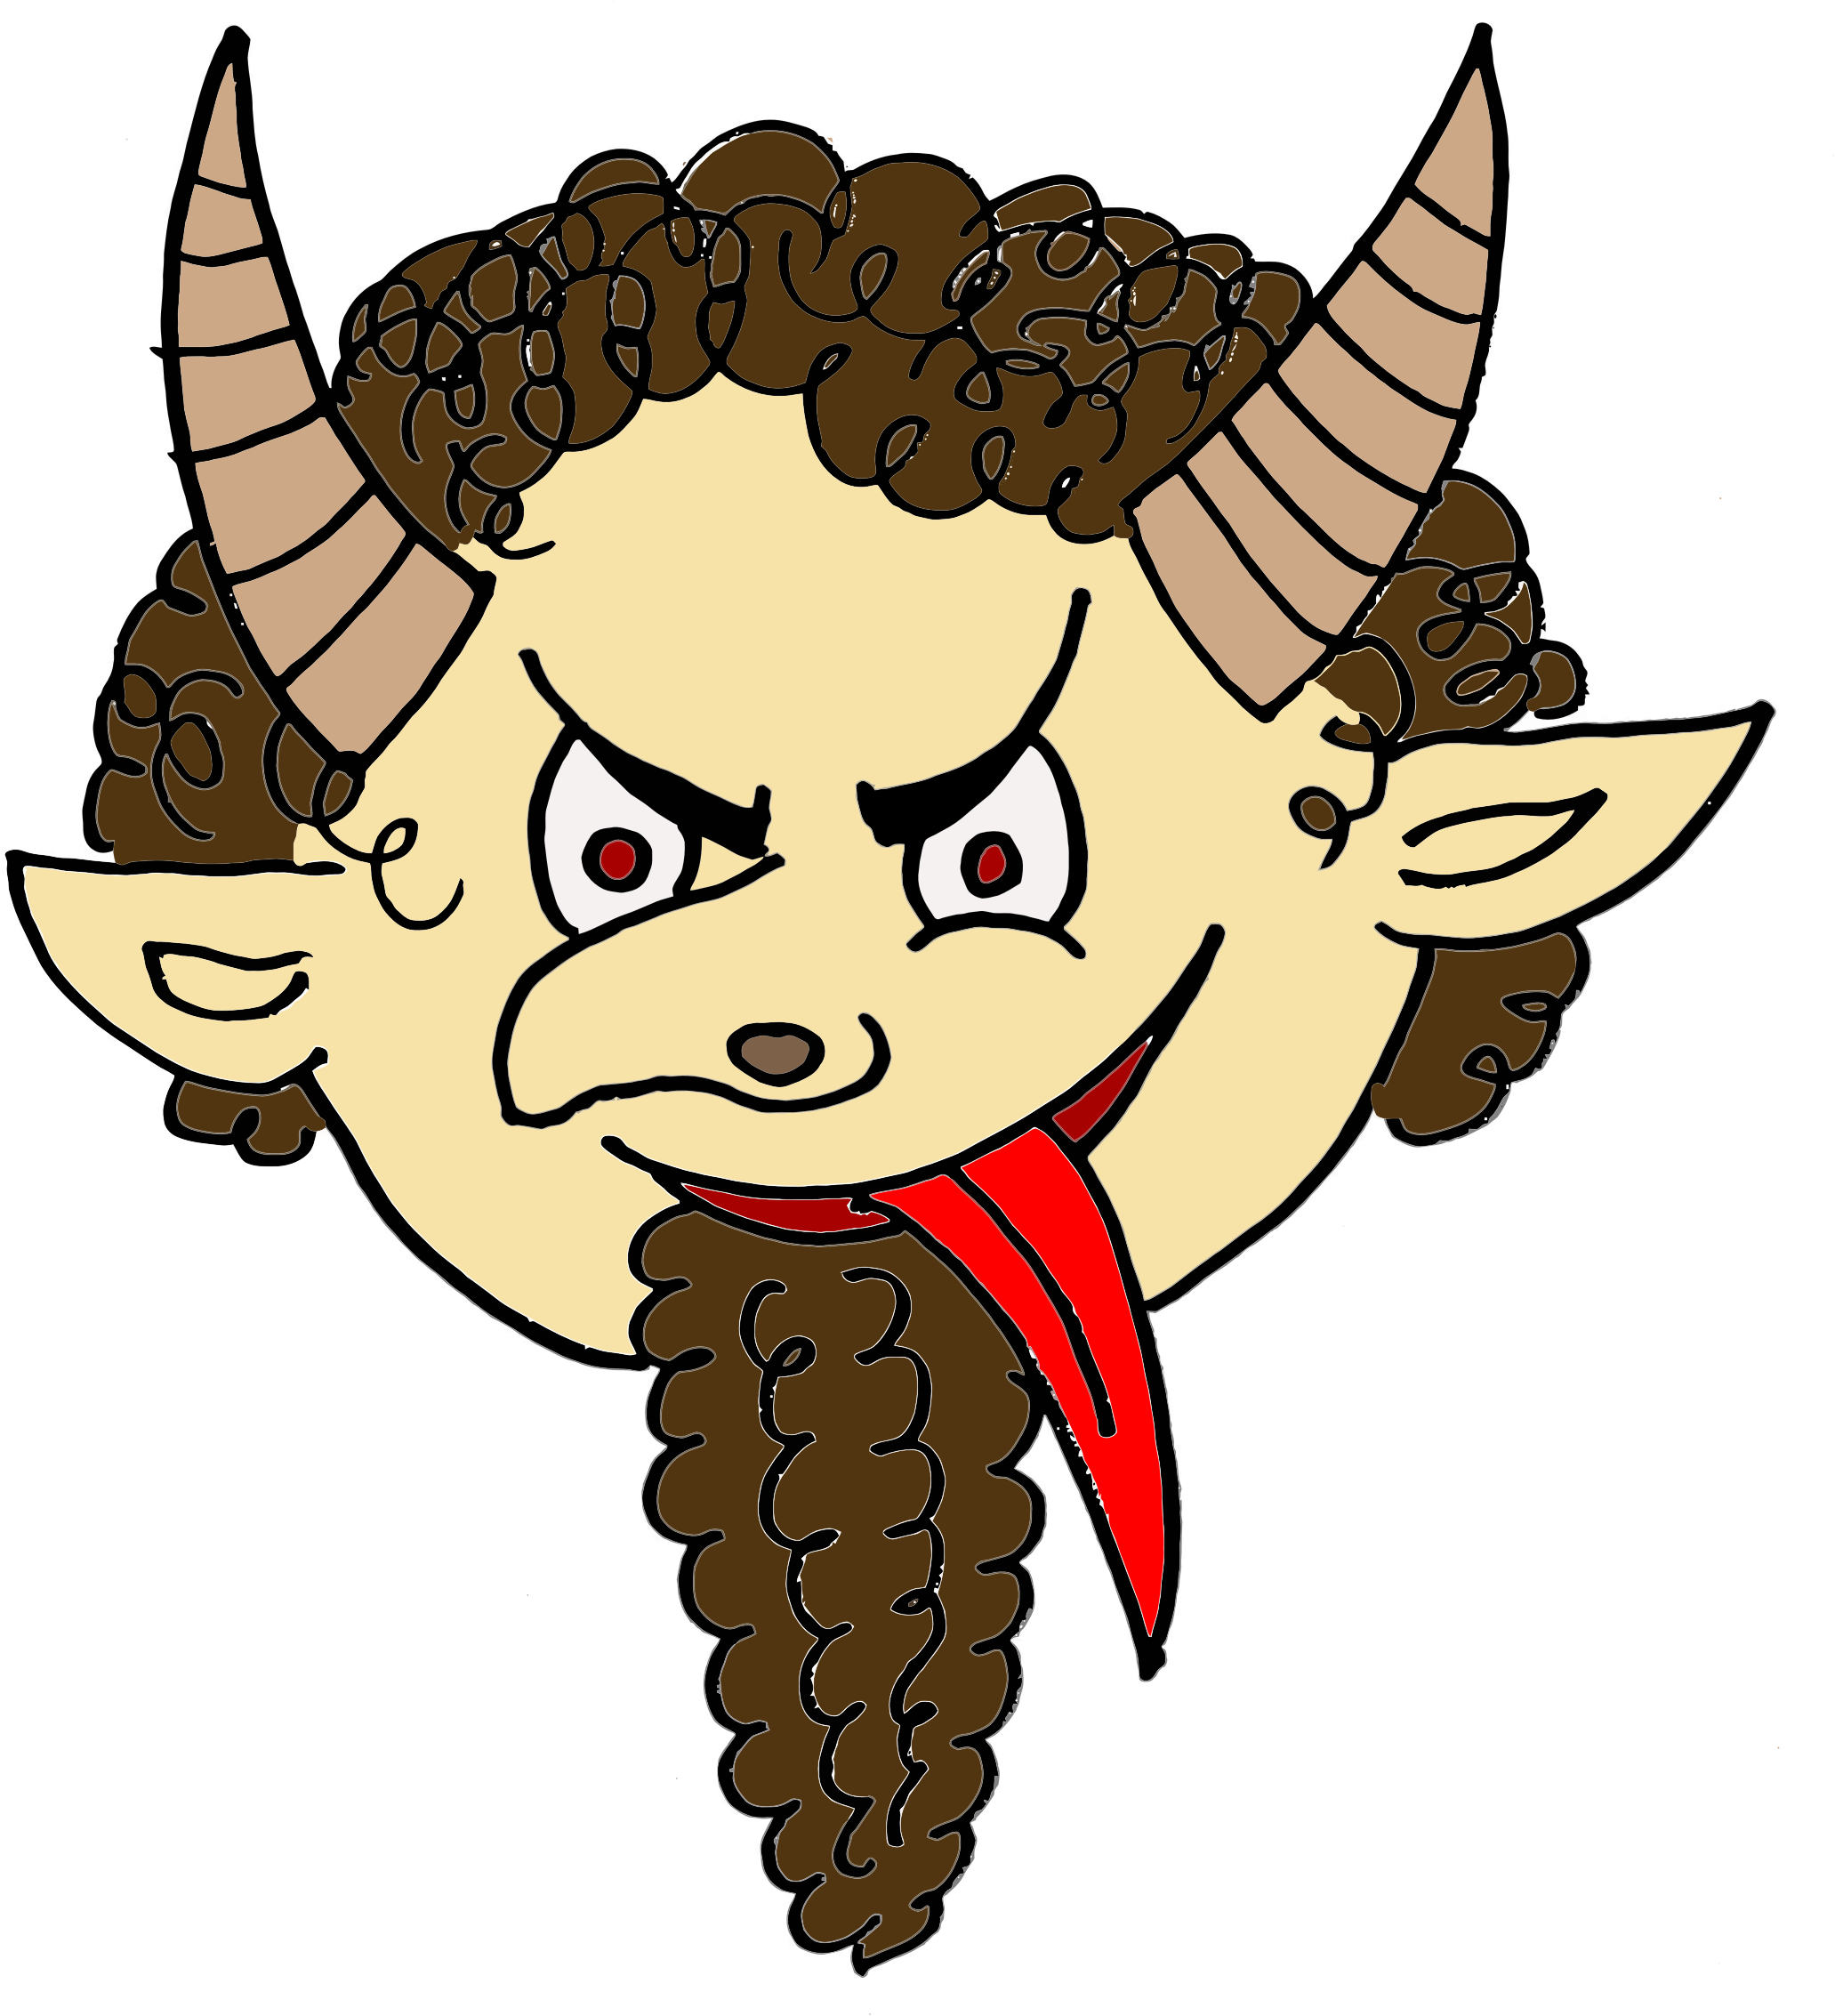 Cartoon Devil by GDJ